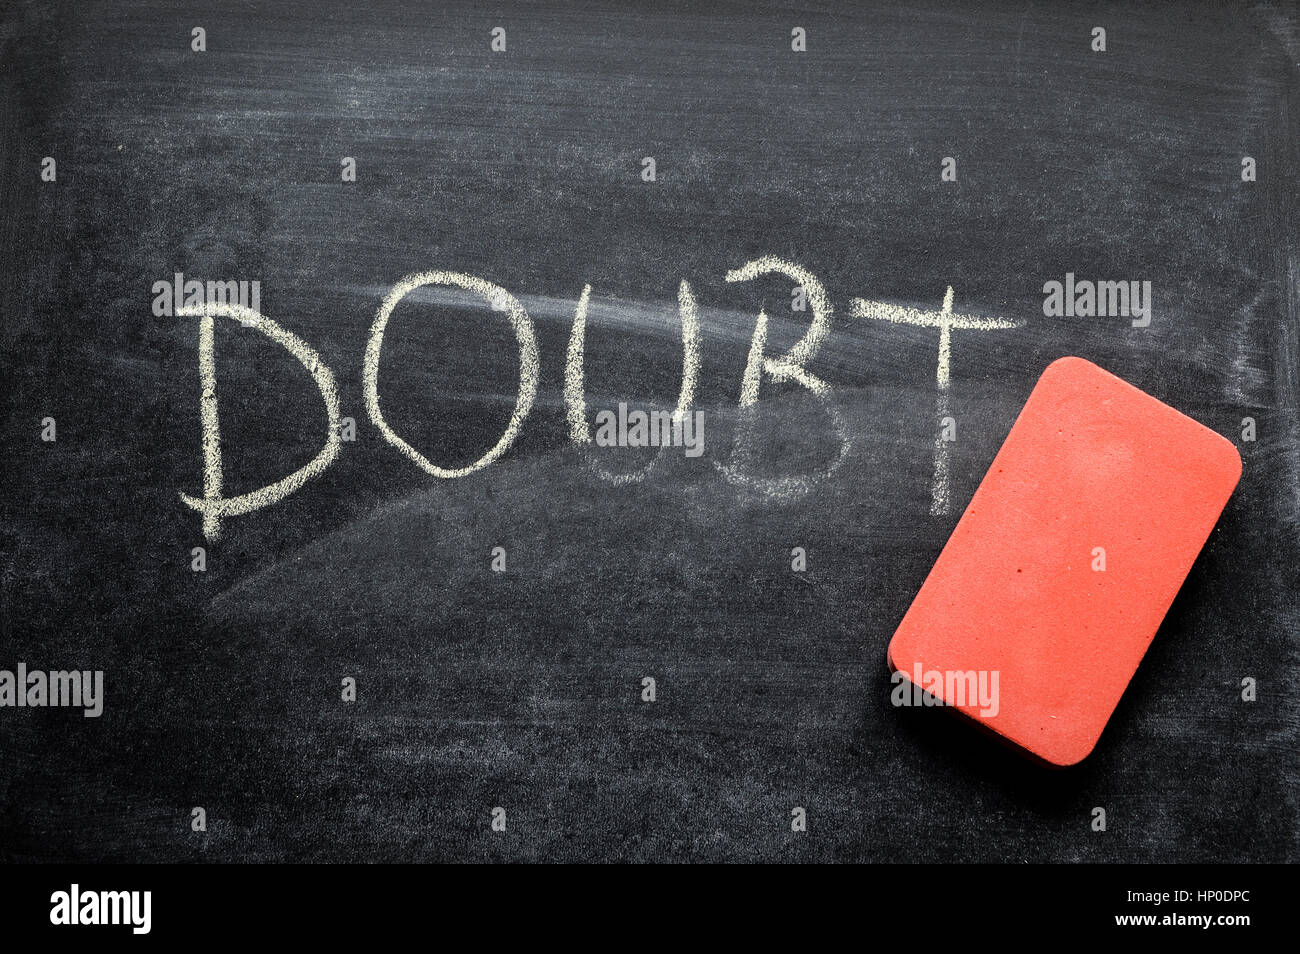 erasing doubt, hand written word on blackboard being erased concept - Stock Image